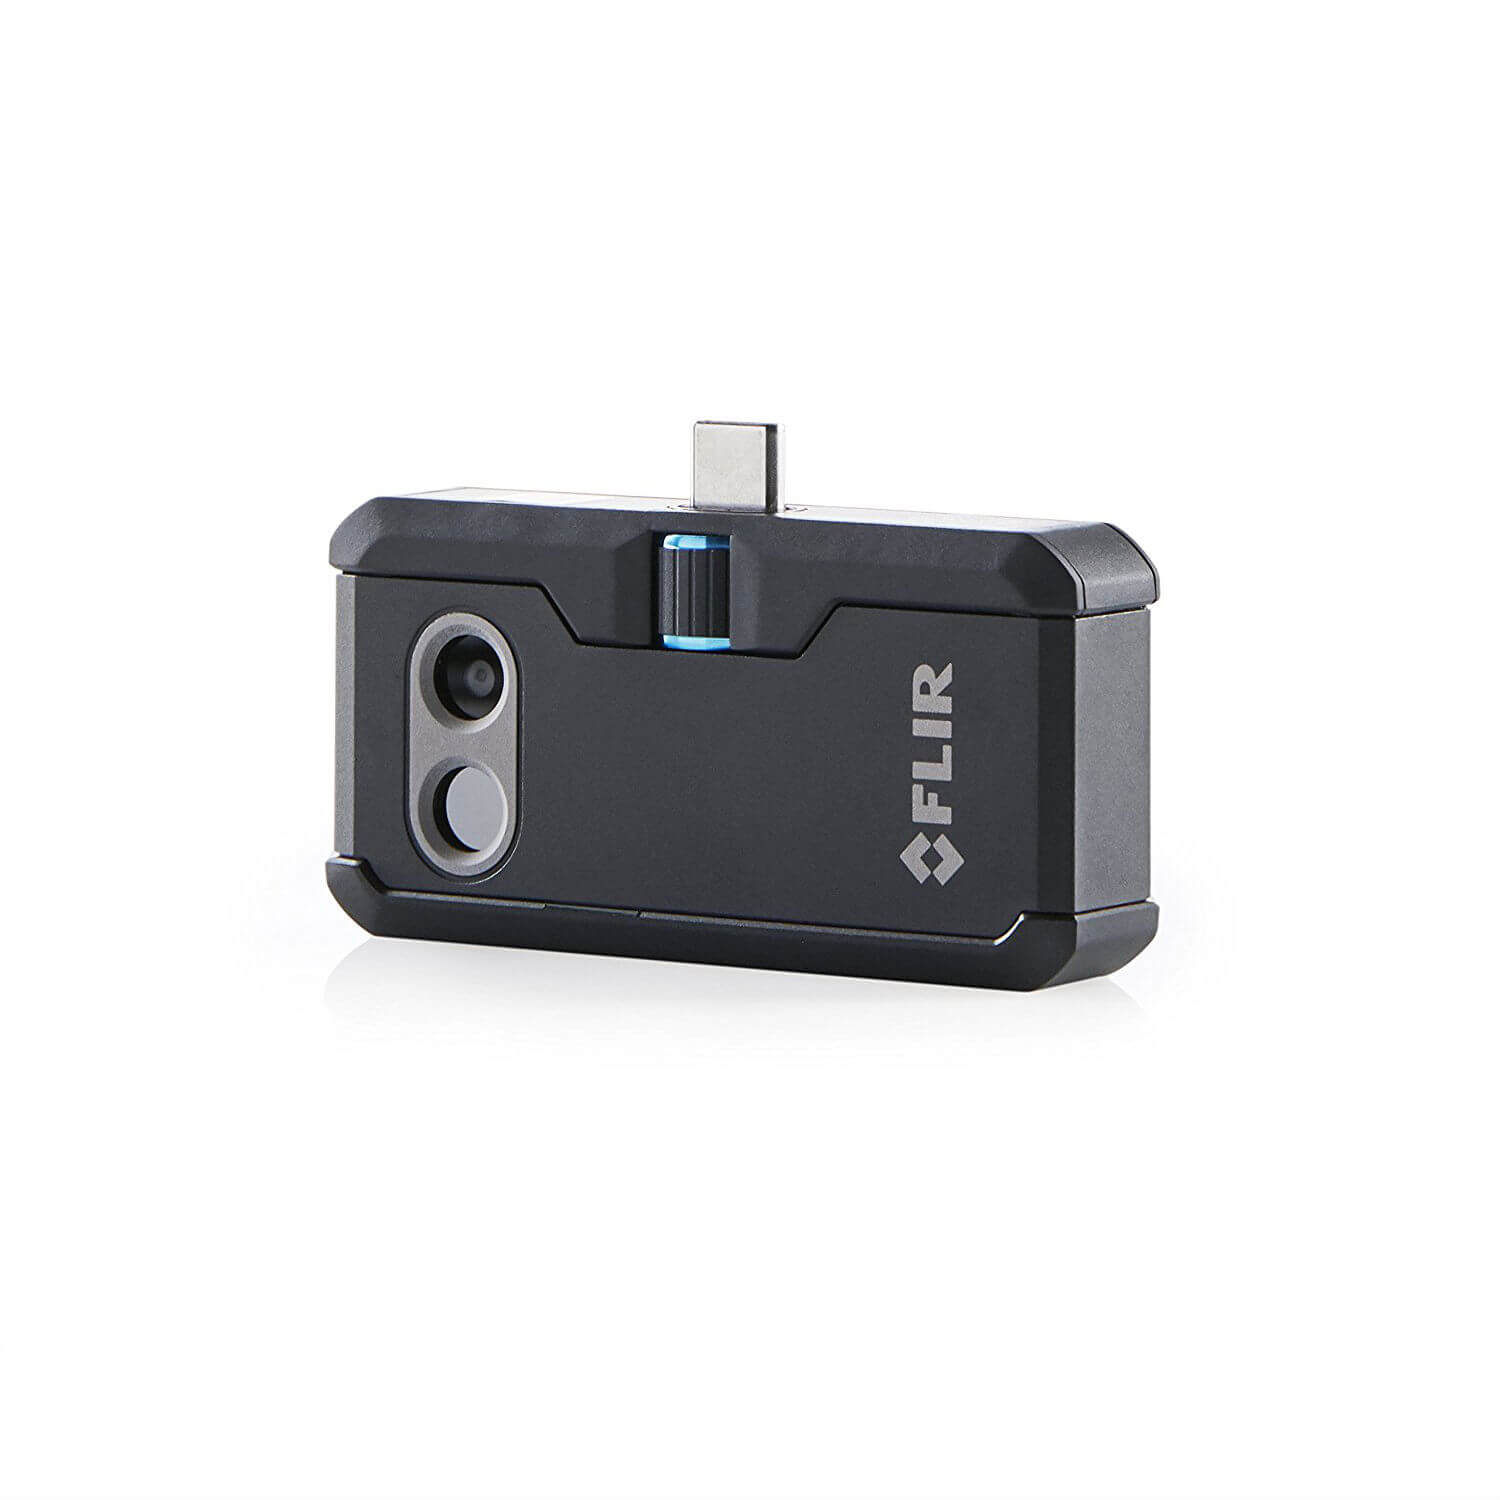 FLIR One Pro Thermal Imaging Camera for Android micro USB